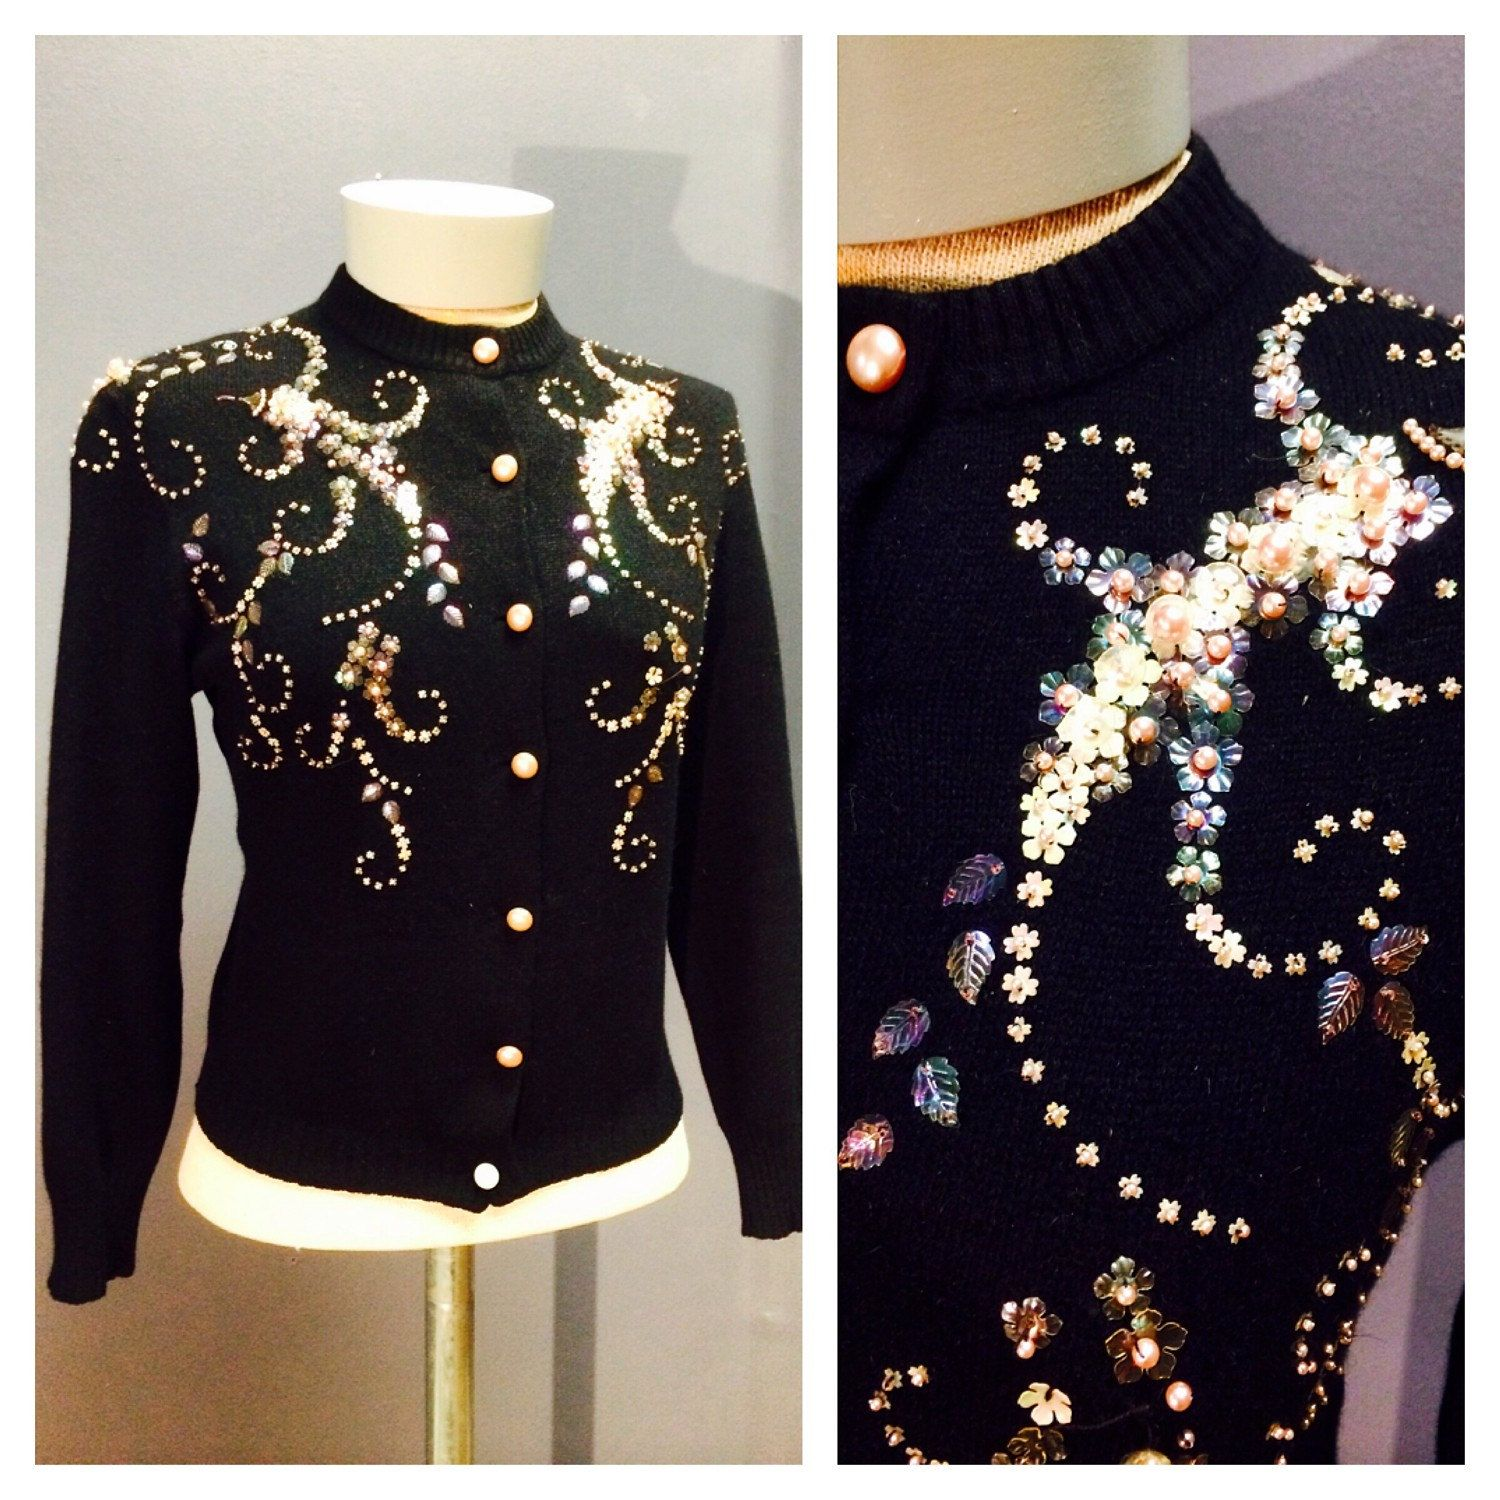 HEAVILY EMBELLISHED 1950's 1960's Vintage AB Sequined Pearls Black Cashmere Wool Spanish Made Cardigan Sweater Odette Palma De Mallorca L Xl by ChickaBoomVintage on Etsy